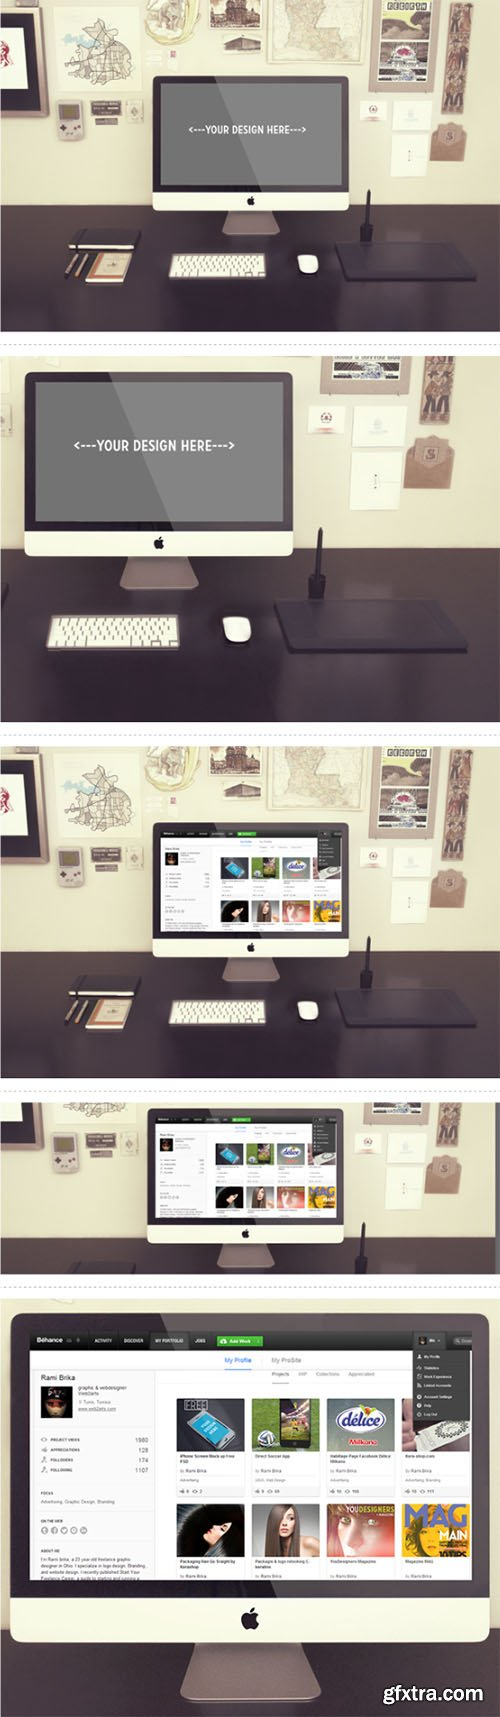 PSD Mock-Up's - Photorealistic Devices iMac